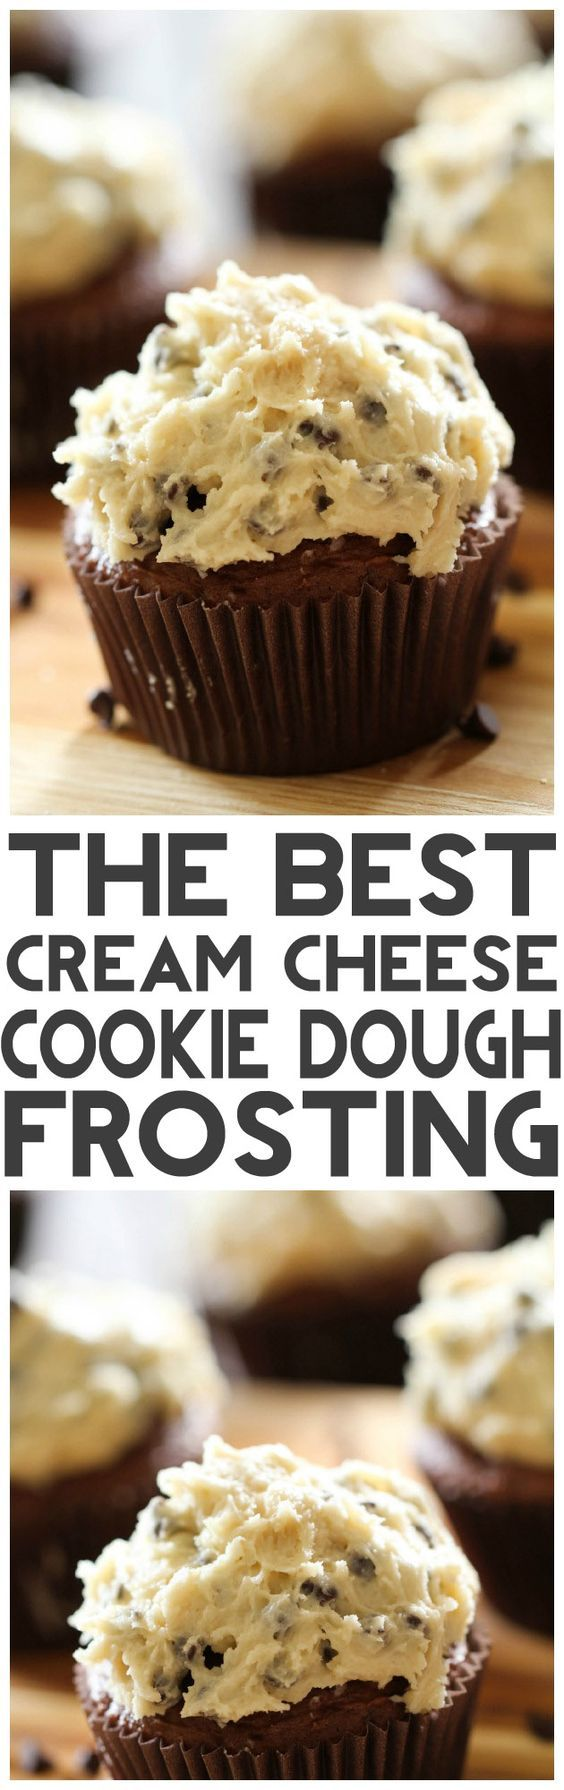 THE BEST Cream Cheese Cookie Dough Frosting from chef-in-training.com ...This frosting is incredible! Seriously, you need to make it to see for yourself!